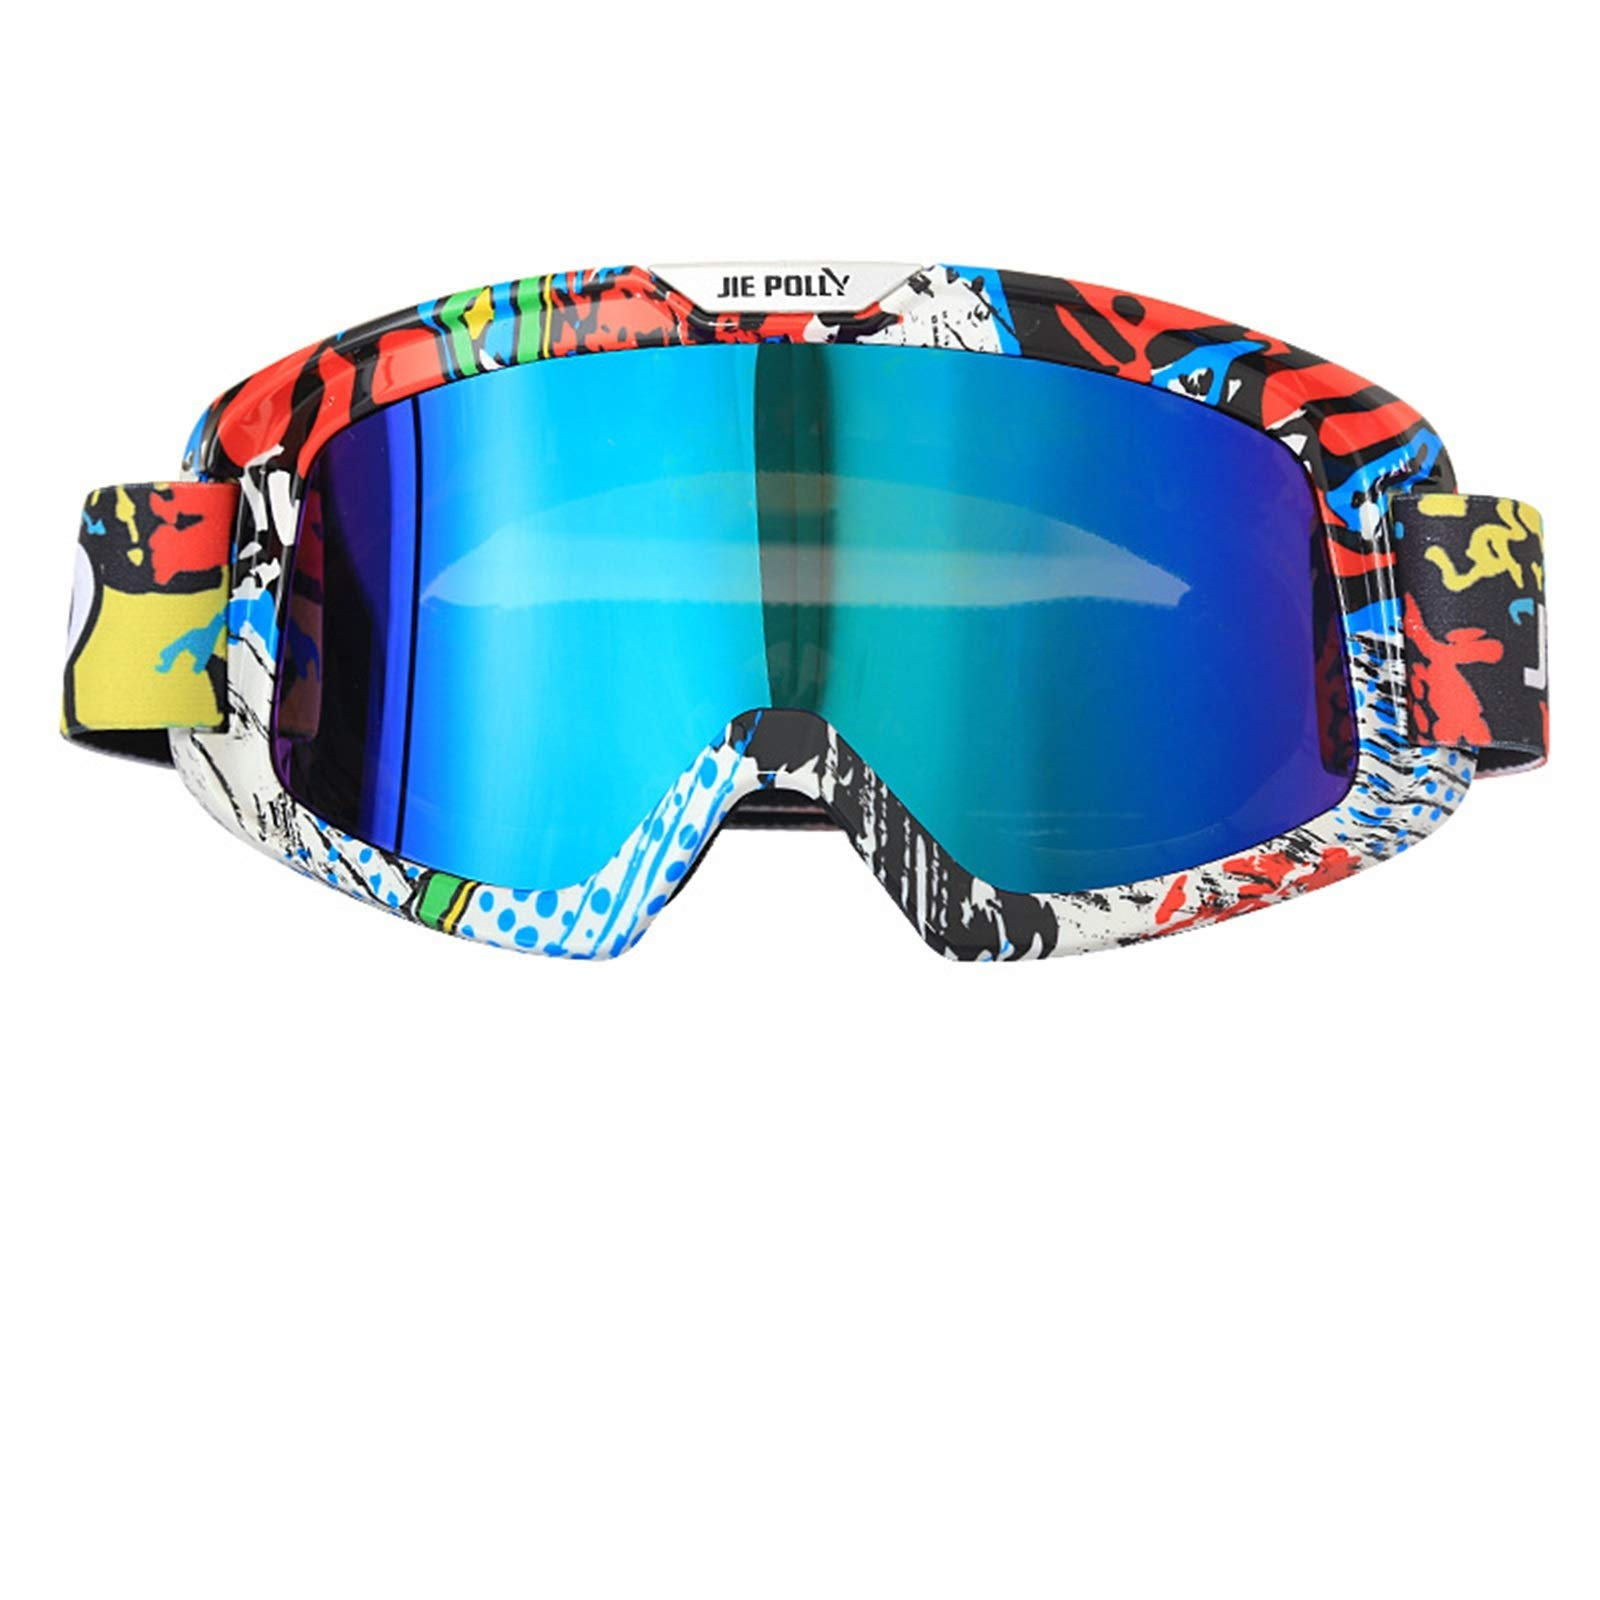 Adisaer Bicycle Goggles Motorcycle Equipment Off-Road ski Sand-Proof Goggles Colorful A03 for Adults